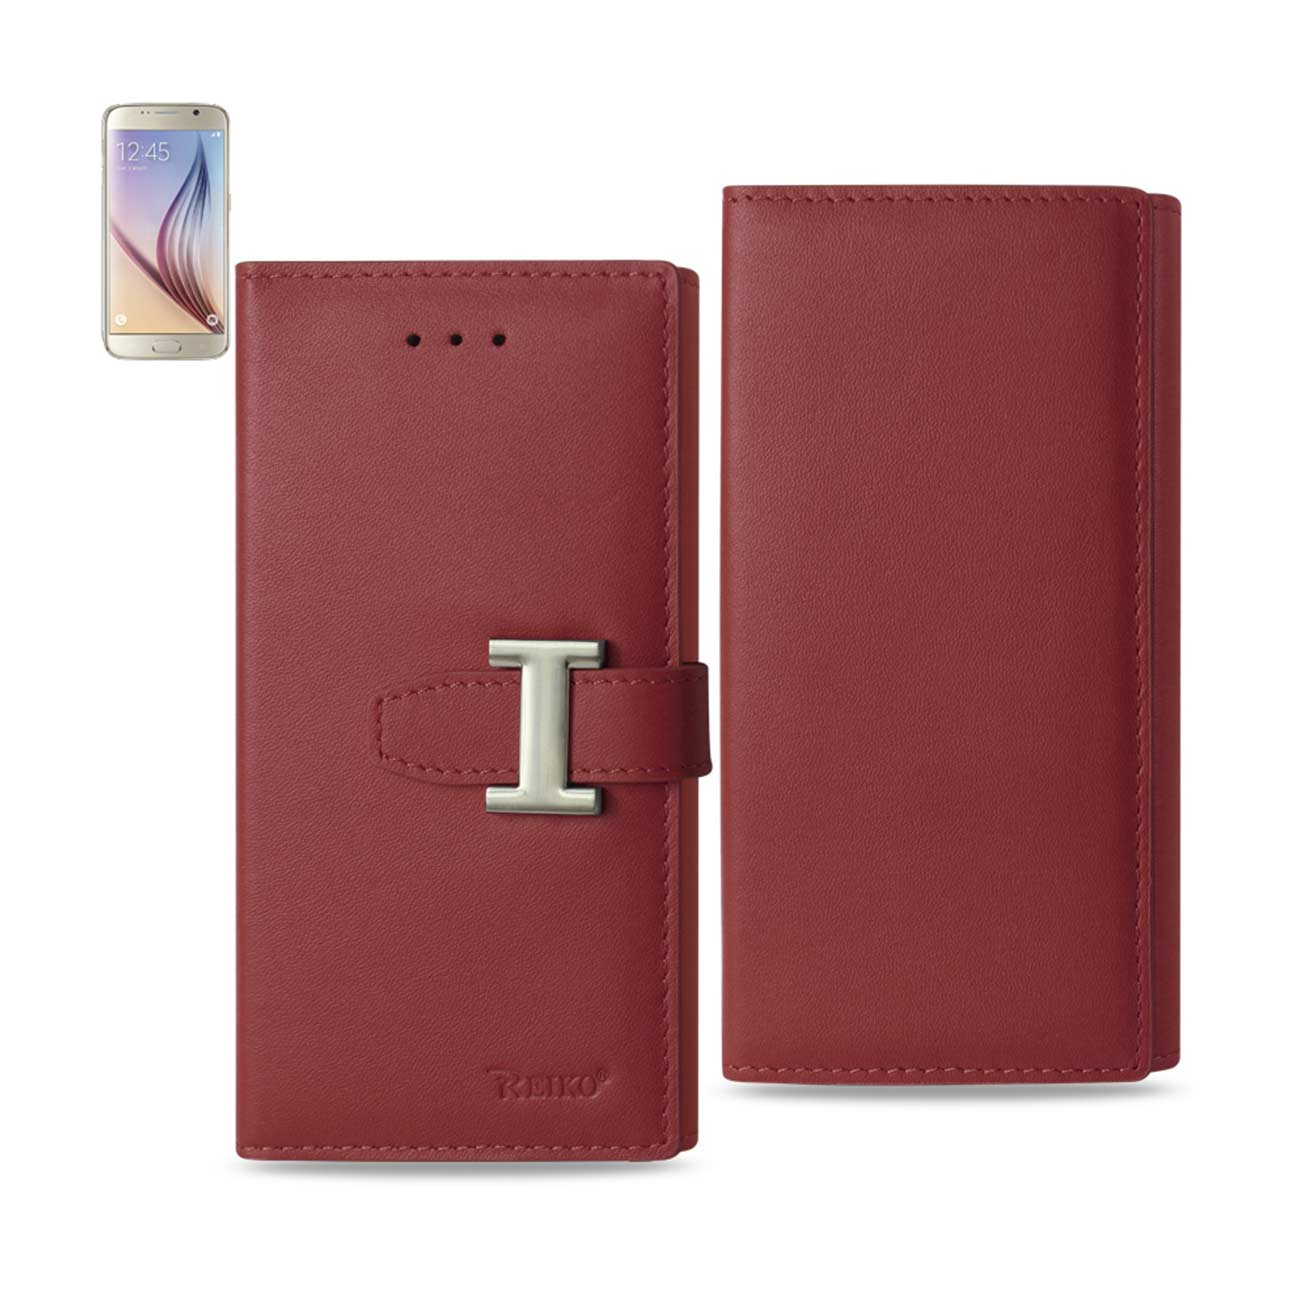 SAMSUNG GALAXY S6 PLUS GENUINE LEATHER RFID WALLET CASE IN BURGUNDY